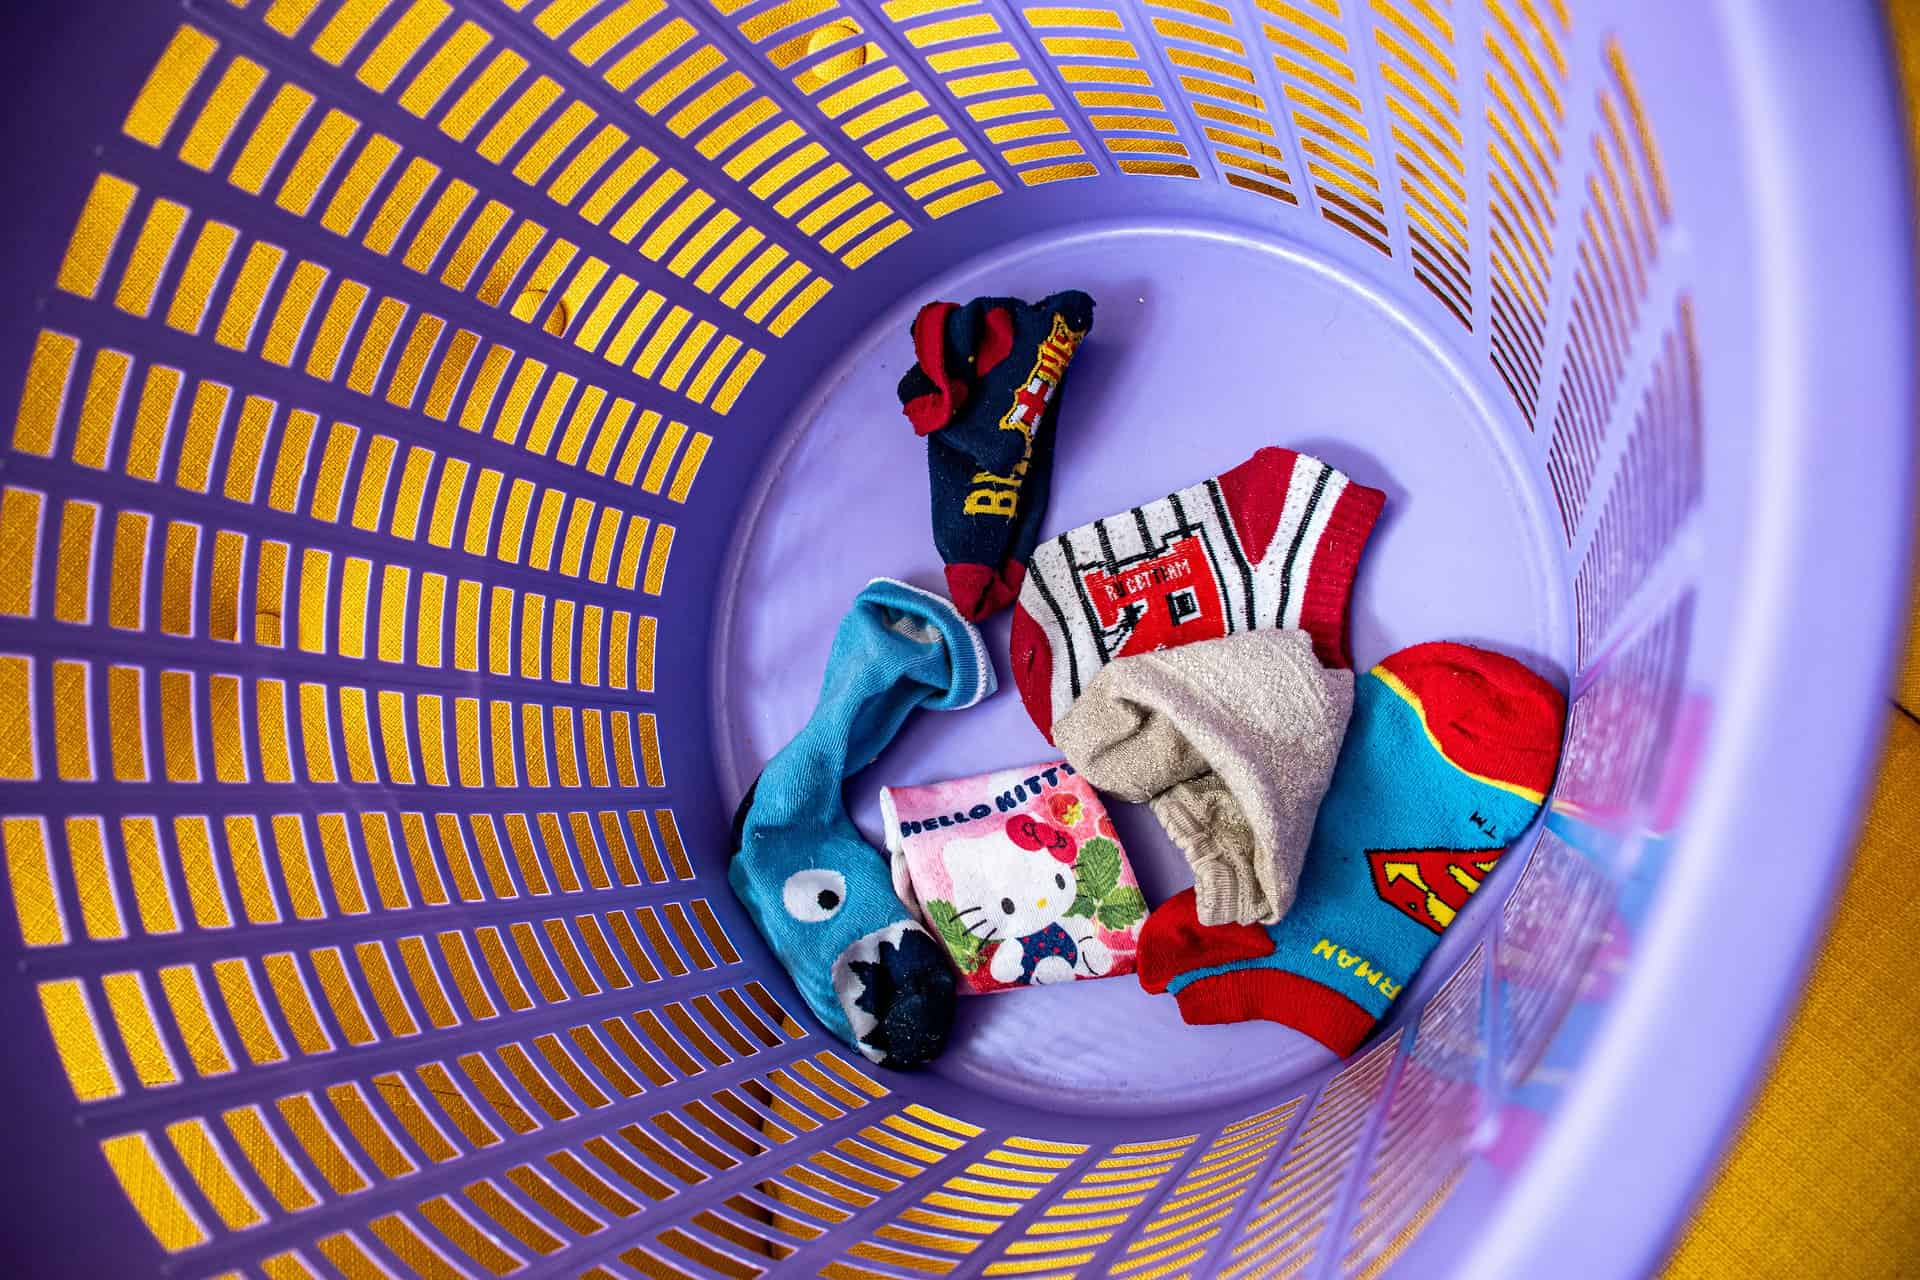 Socks on a laundry basket